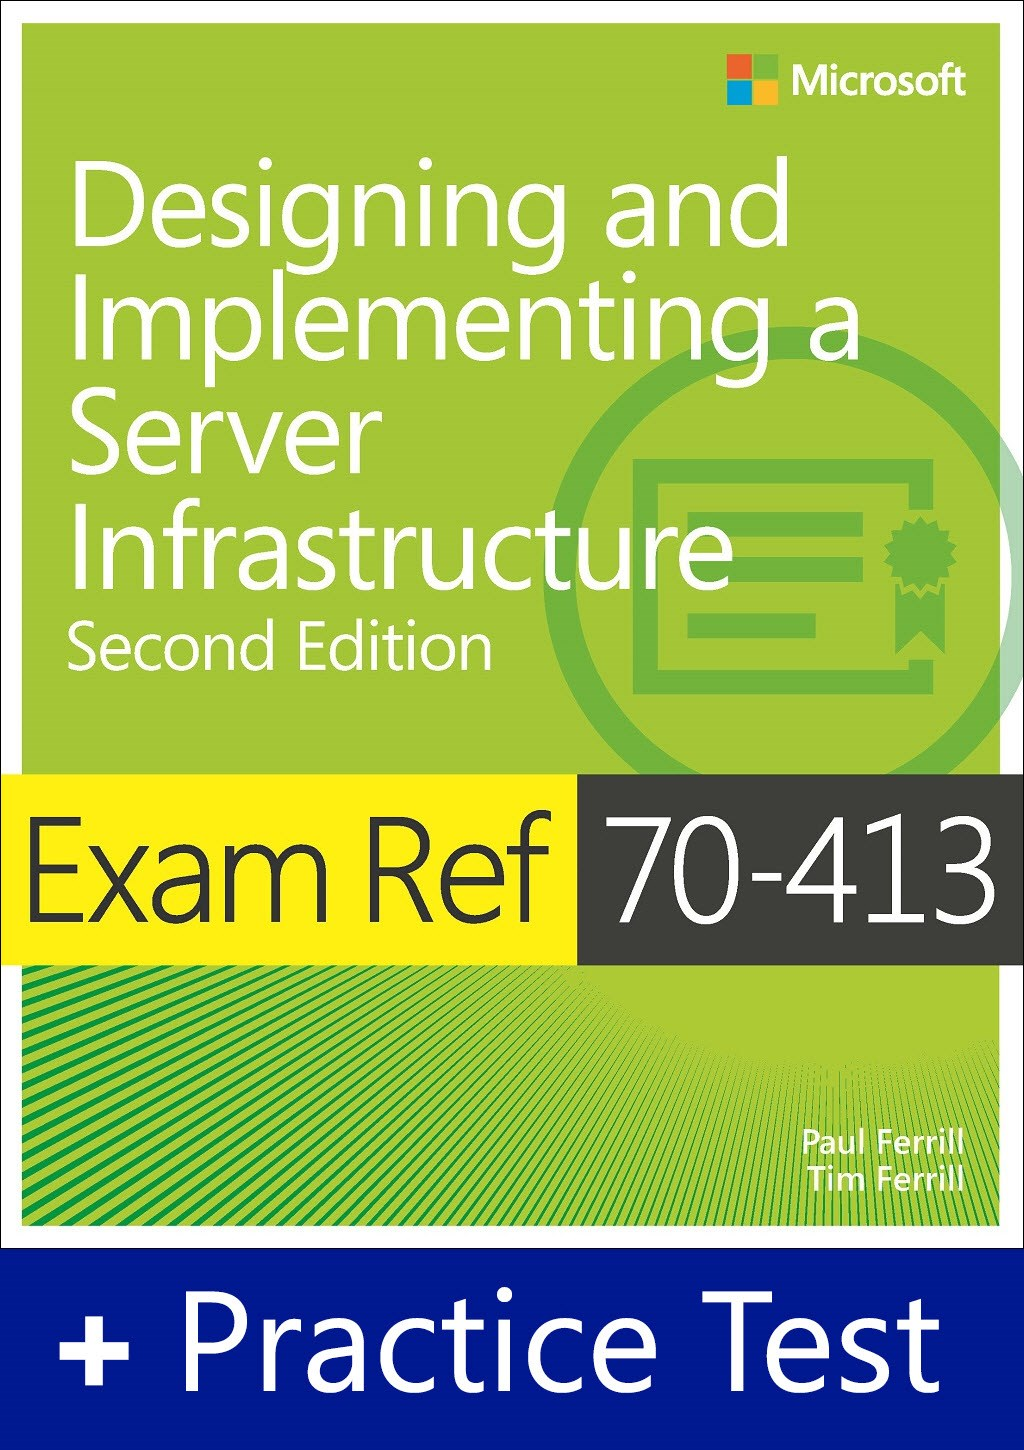 Exam Ref 70-413 Designing and Implementing a Server Infrastructure with Practice Test